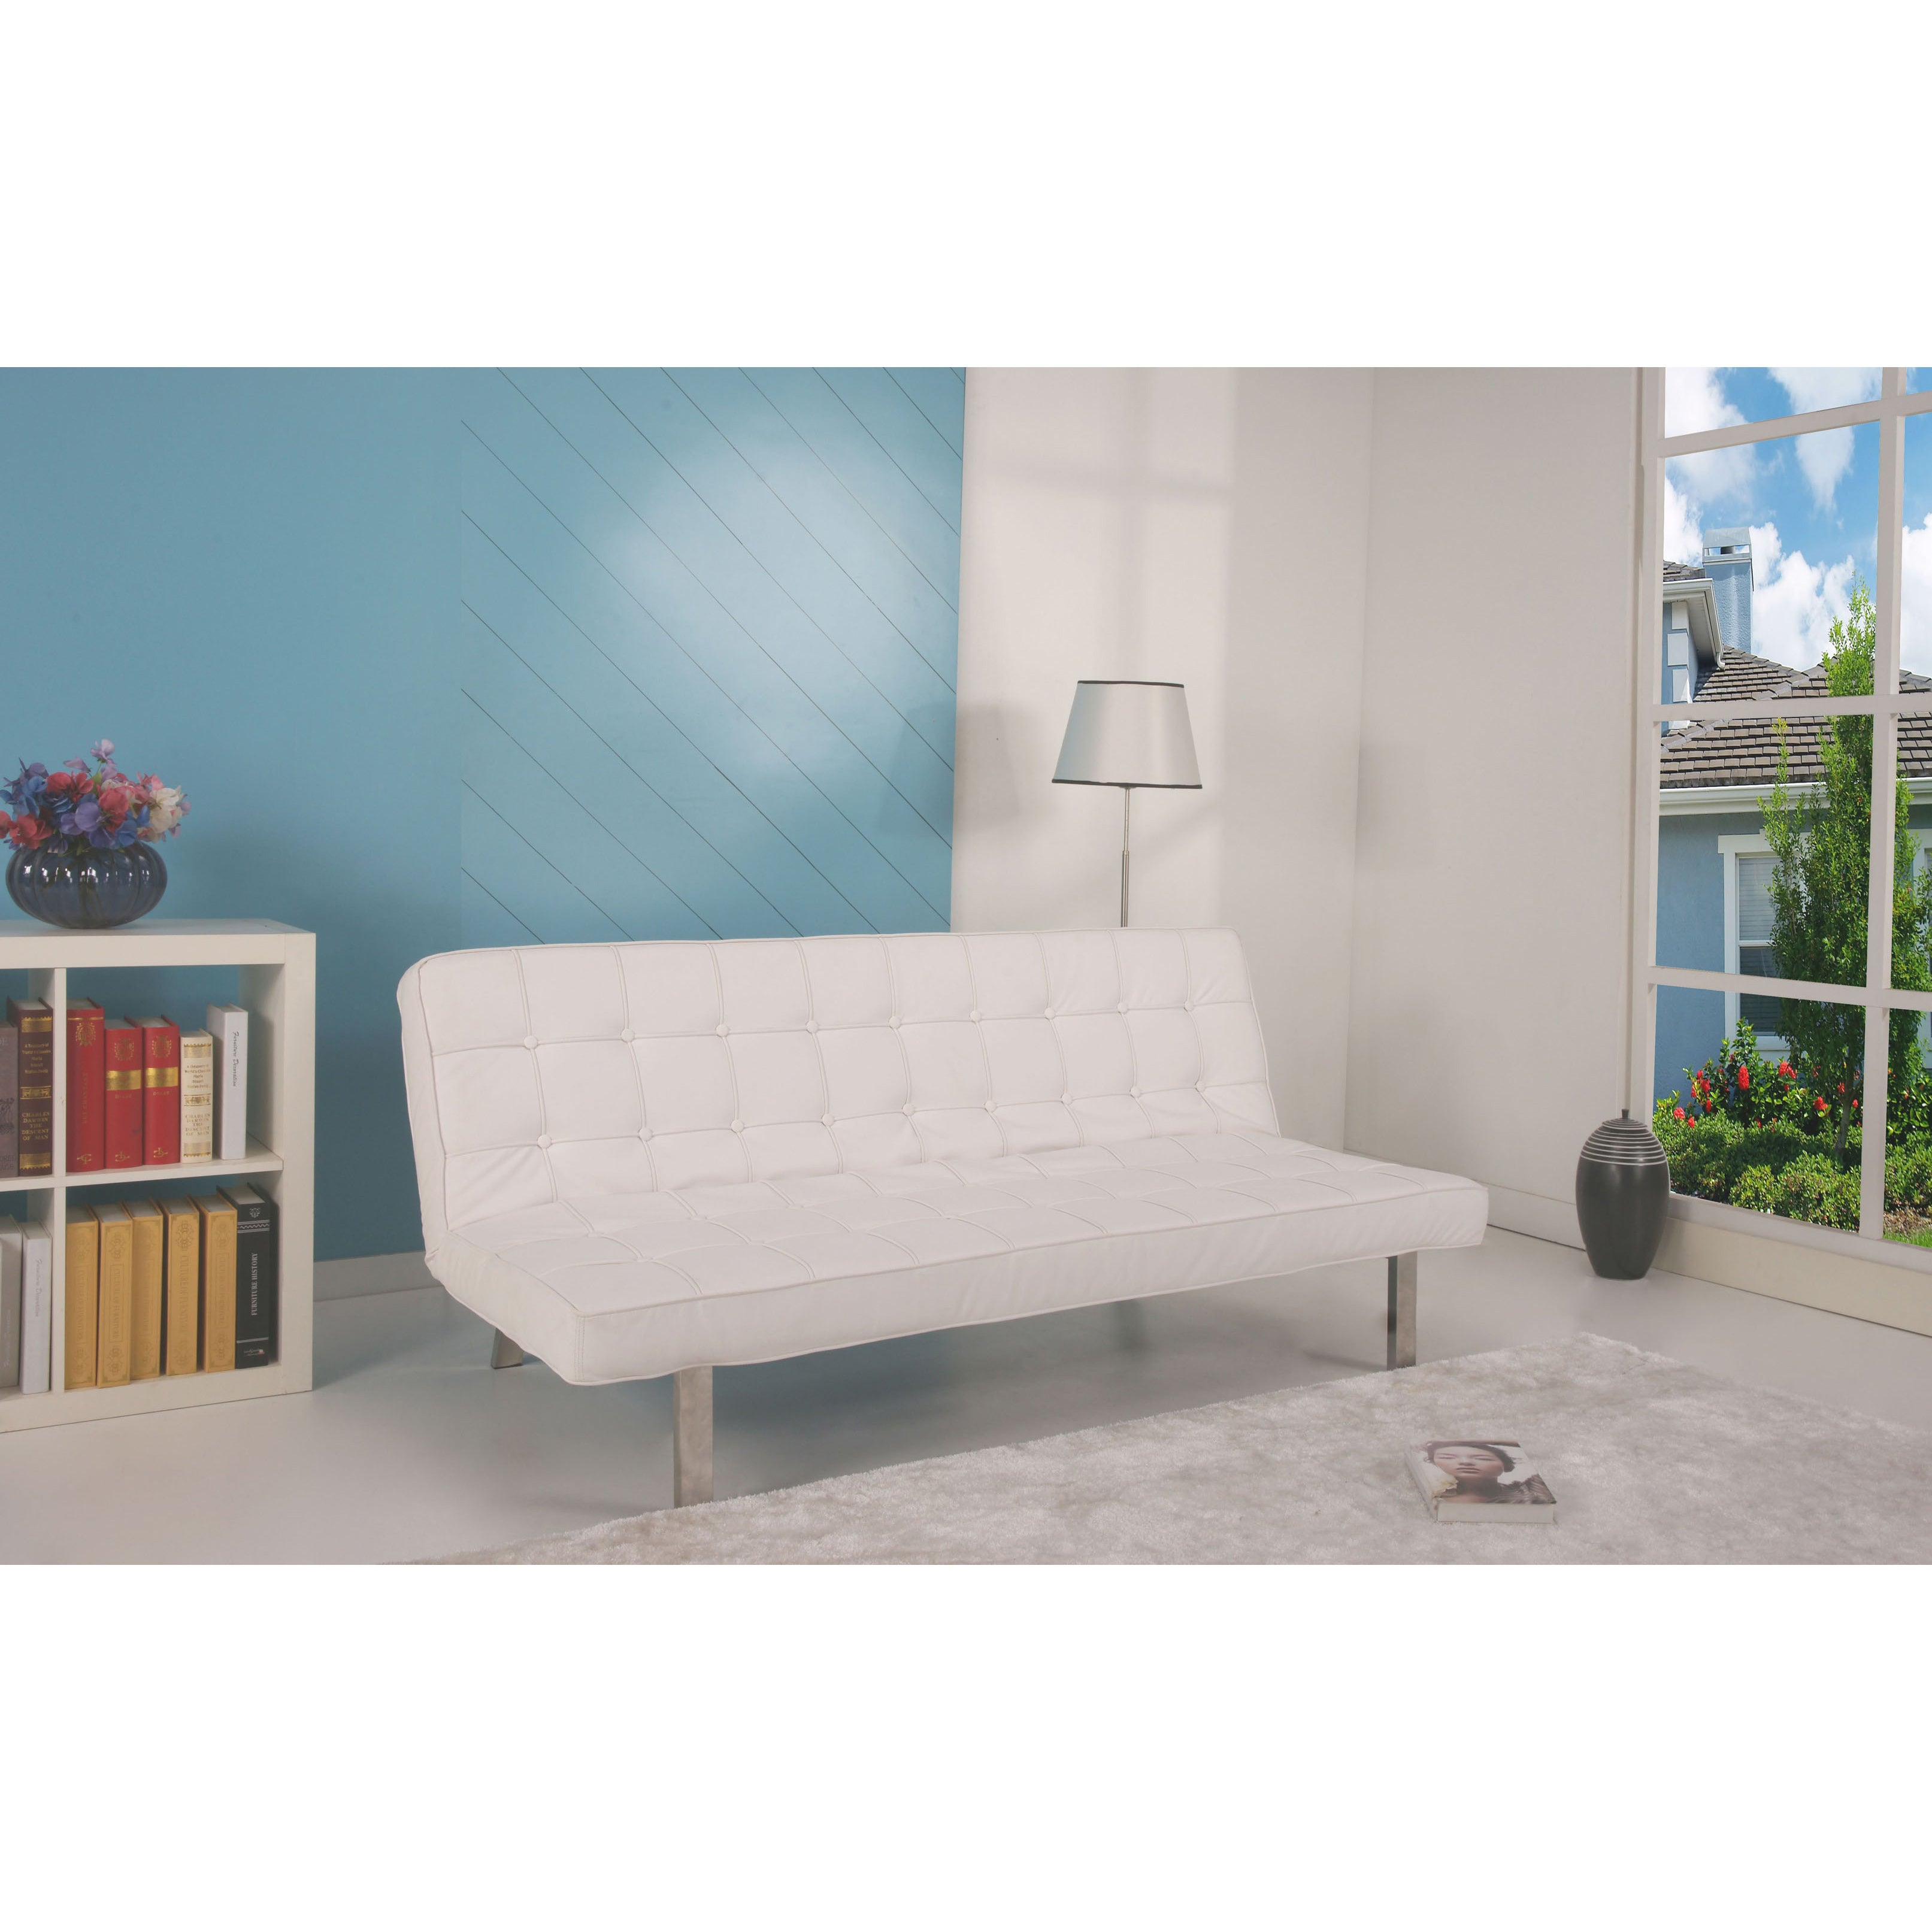 'Vegas' White Futon Sofa Bed at Sears.com